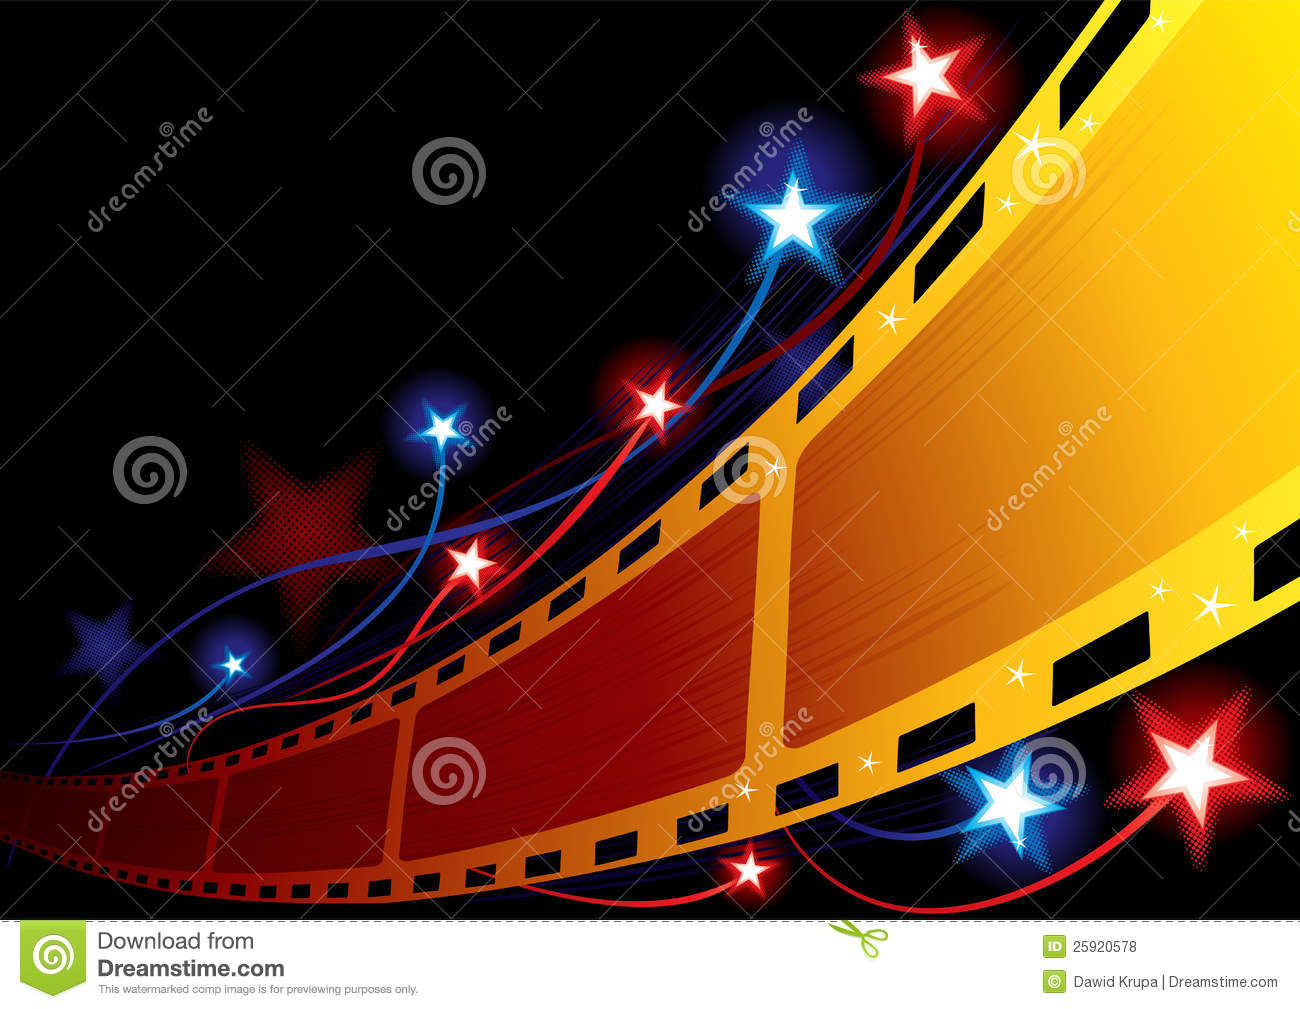 Cinema Background Royalty Free Stock Photos - Image: 25920578